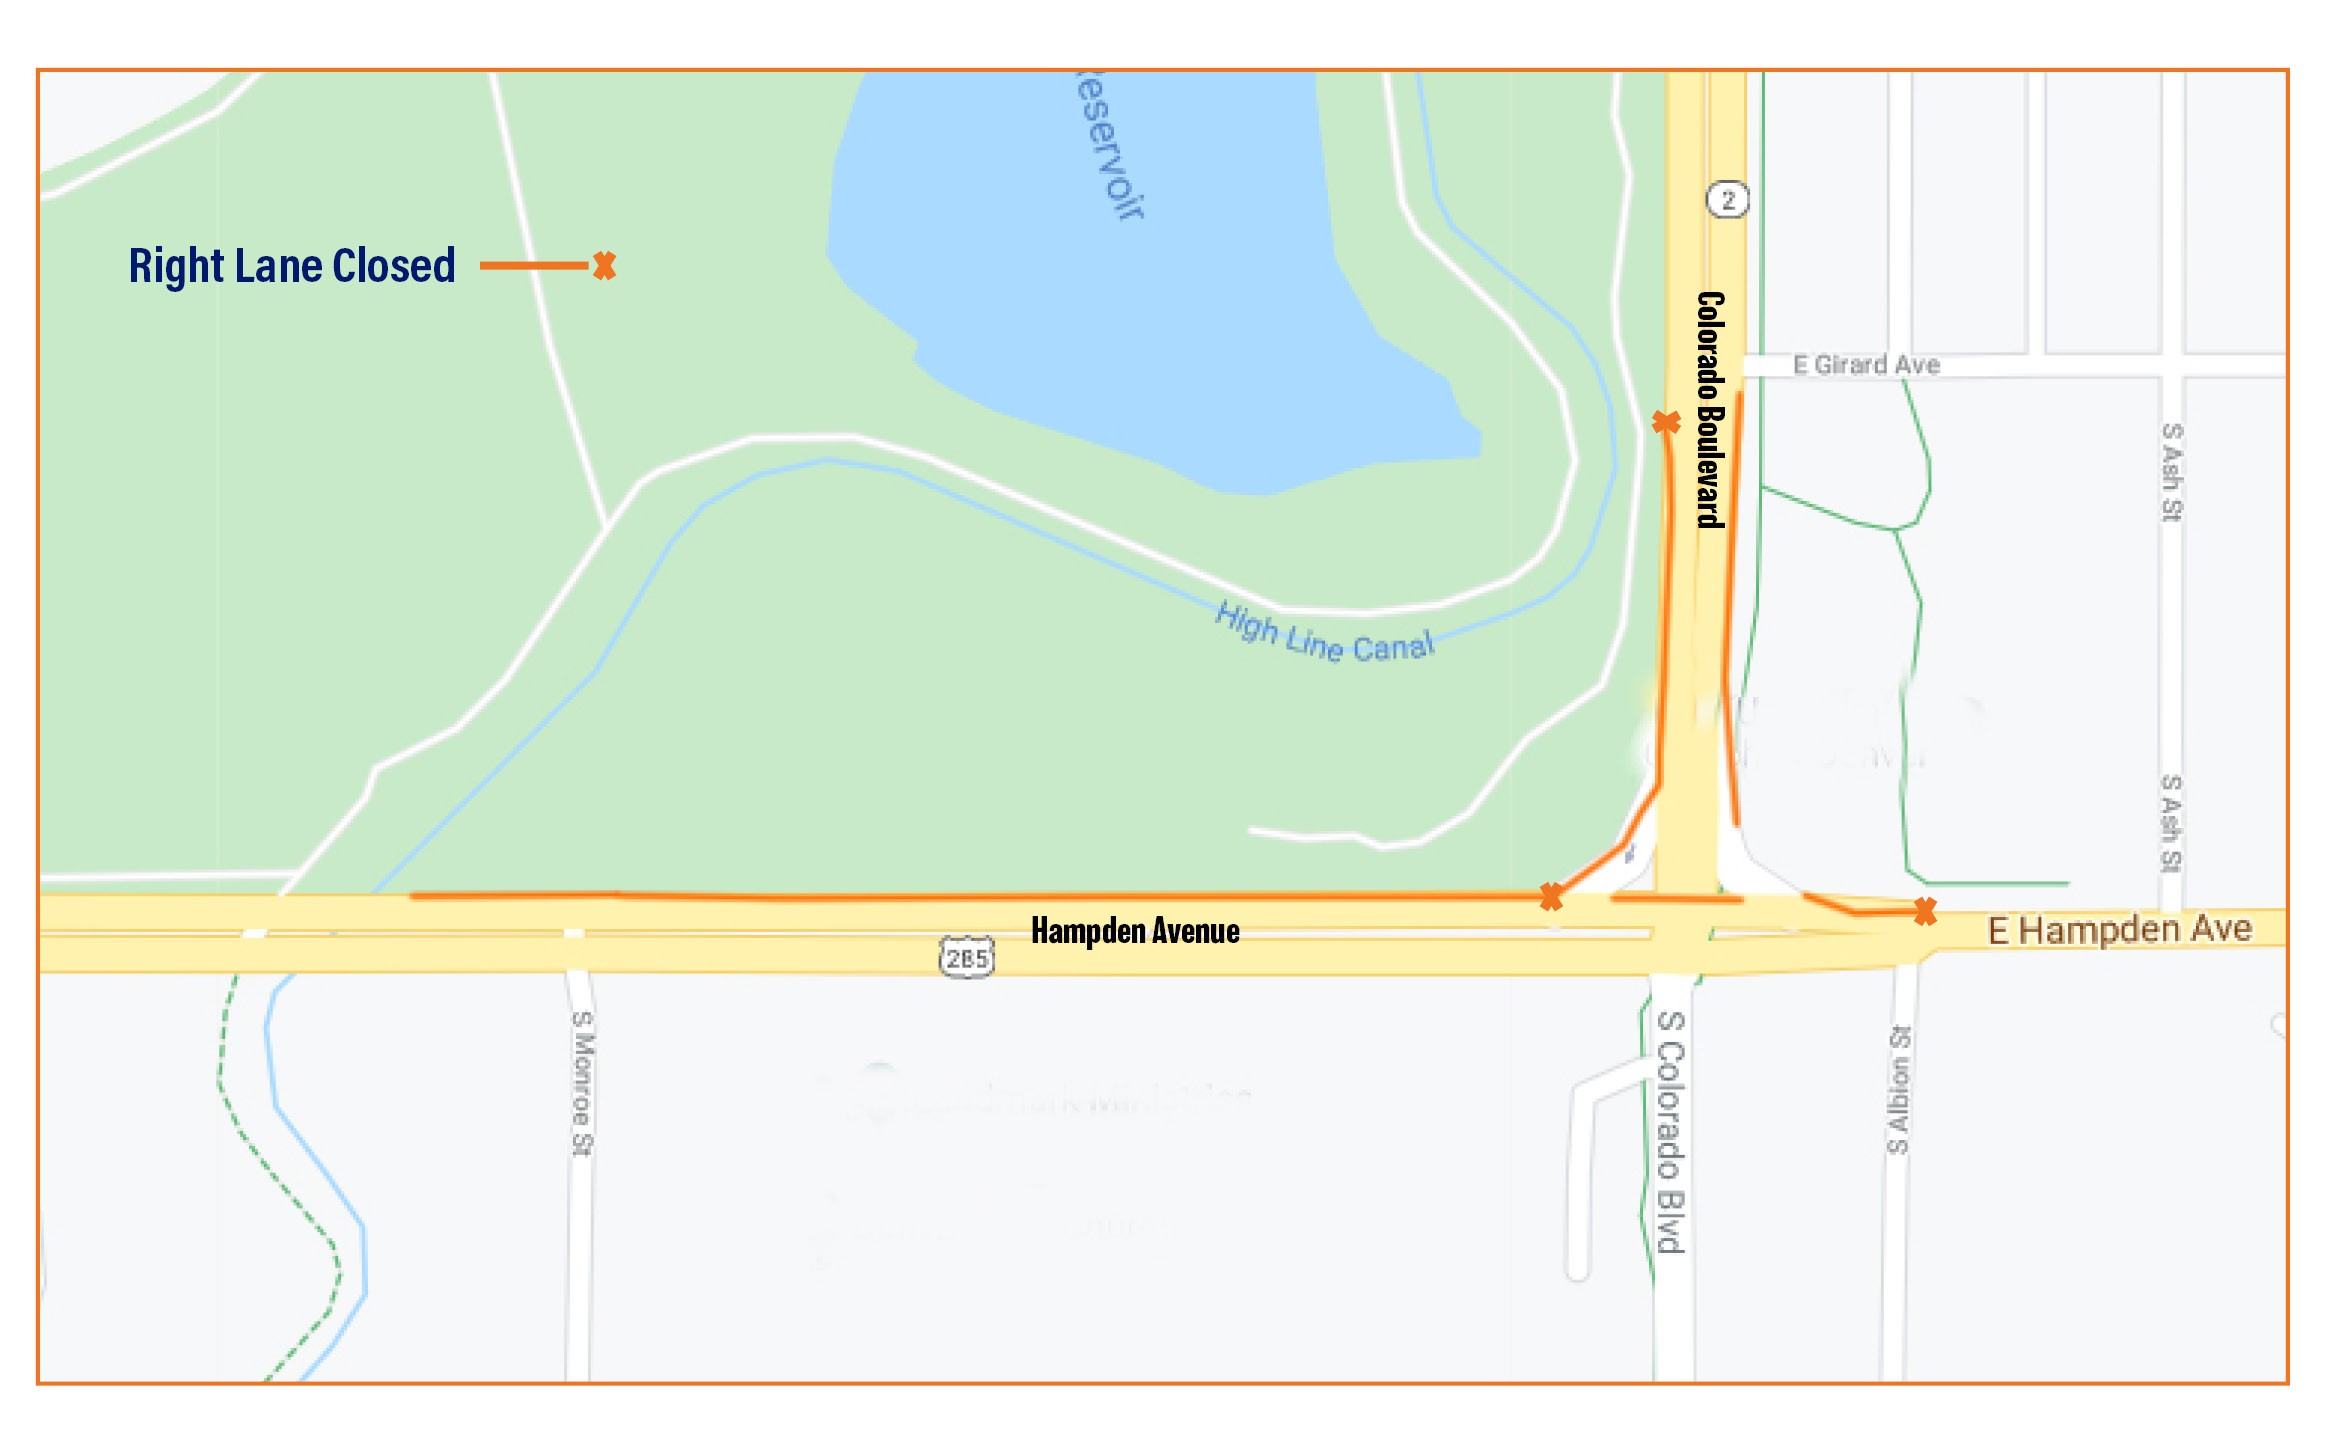 Lane Closures for Hampden Colorado Underpass Project